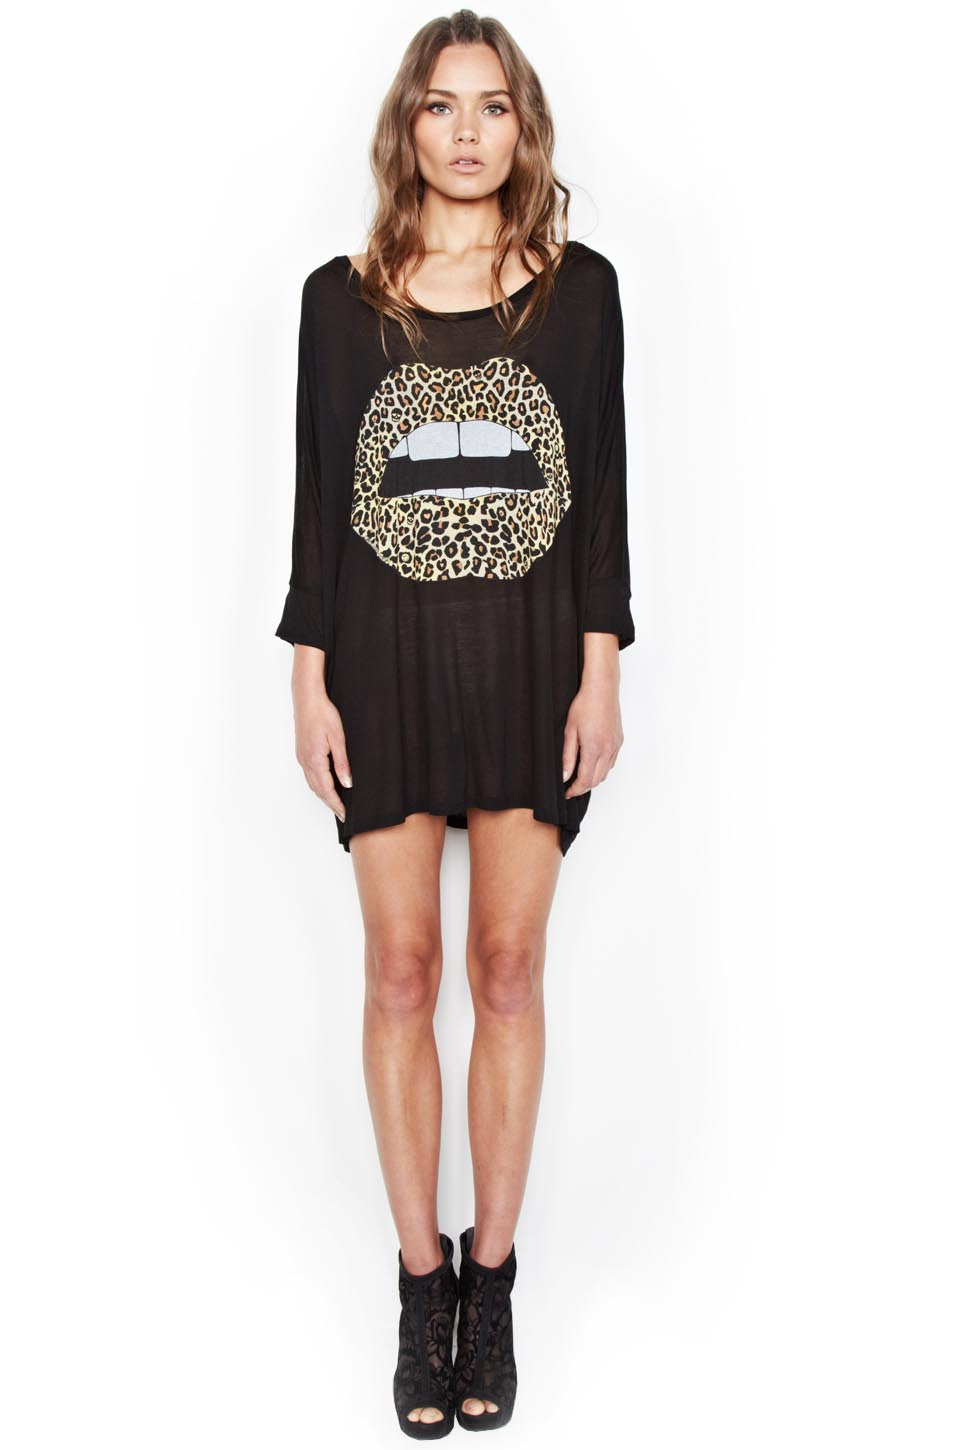 Milly Color Leopard Lip 3/4 Slv Oversized Dress - Lauren Moshi - 1